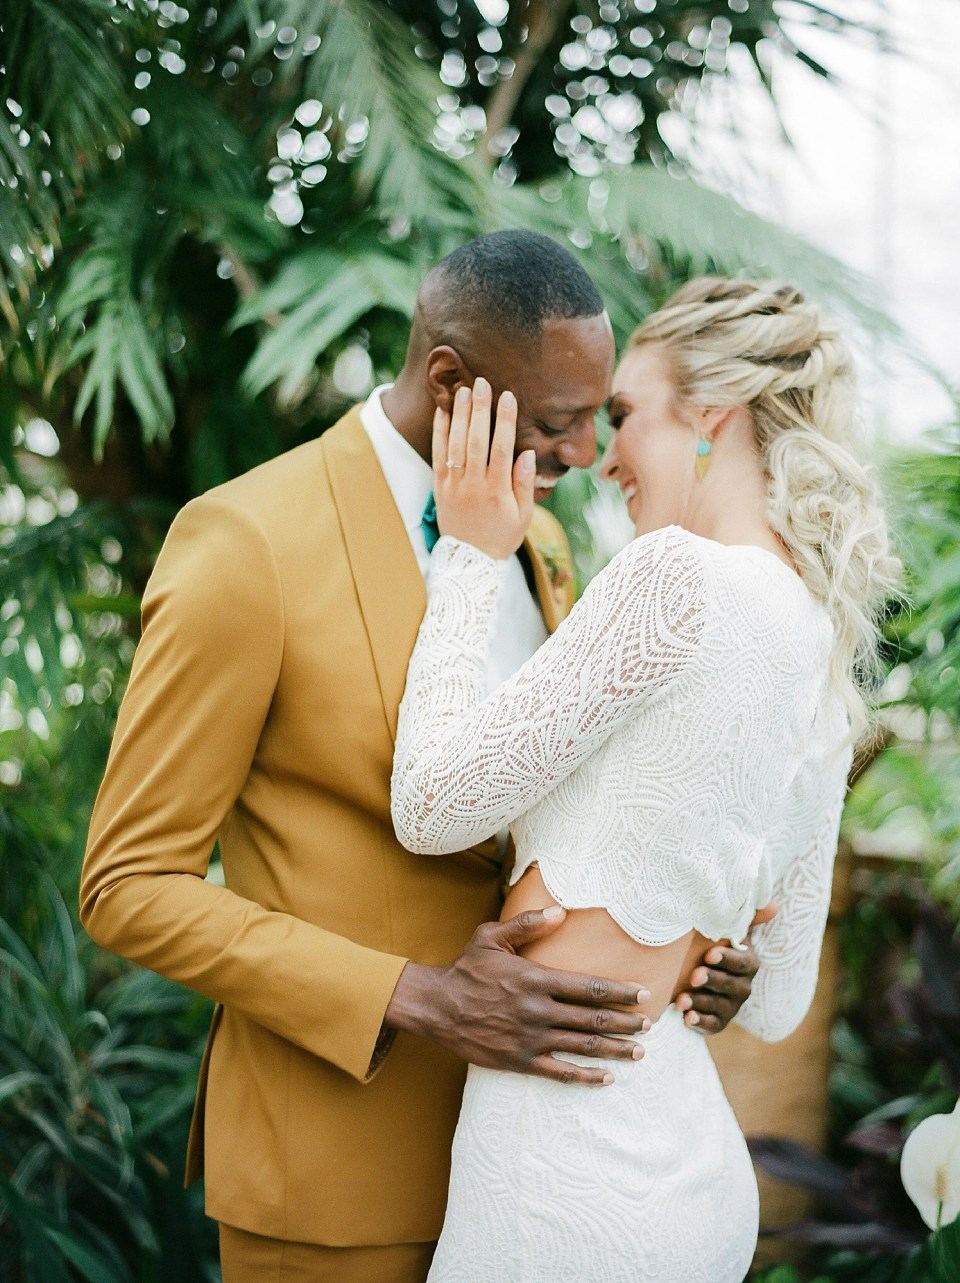 Colorful and Vibrant Wedding Photography at Fairmount Horticultural Center by Magdalena Studios 0049